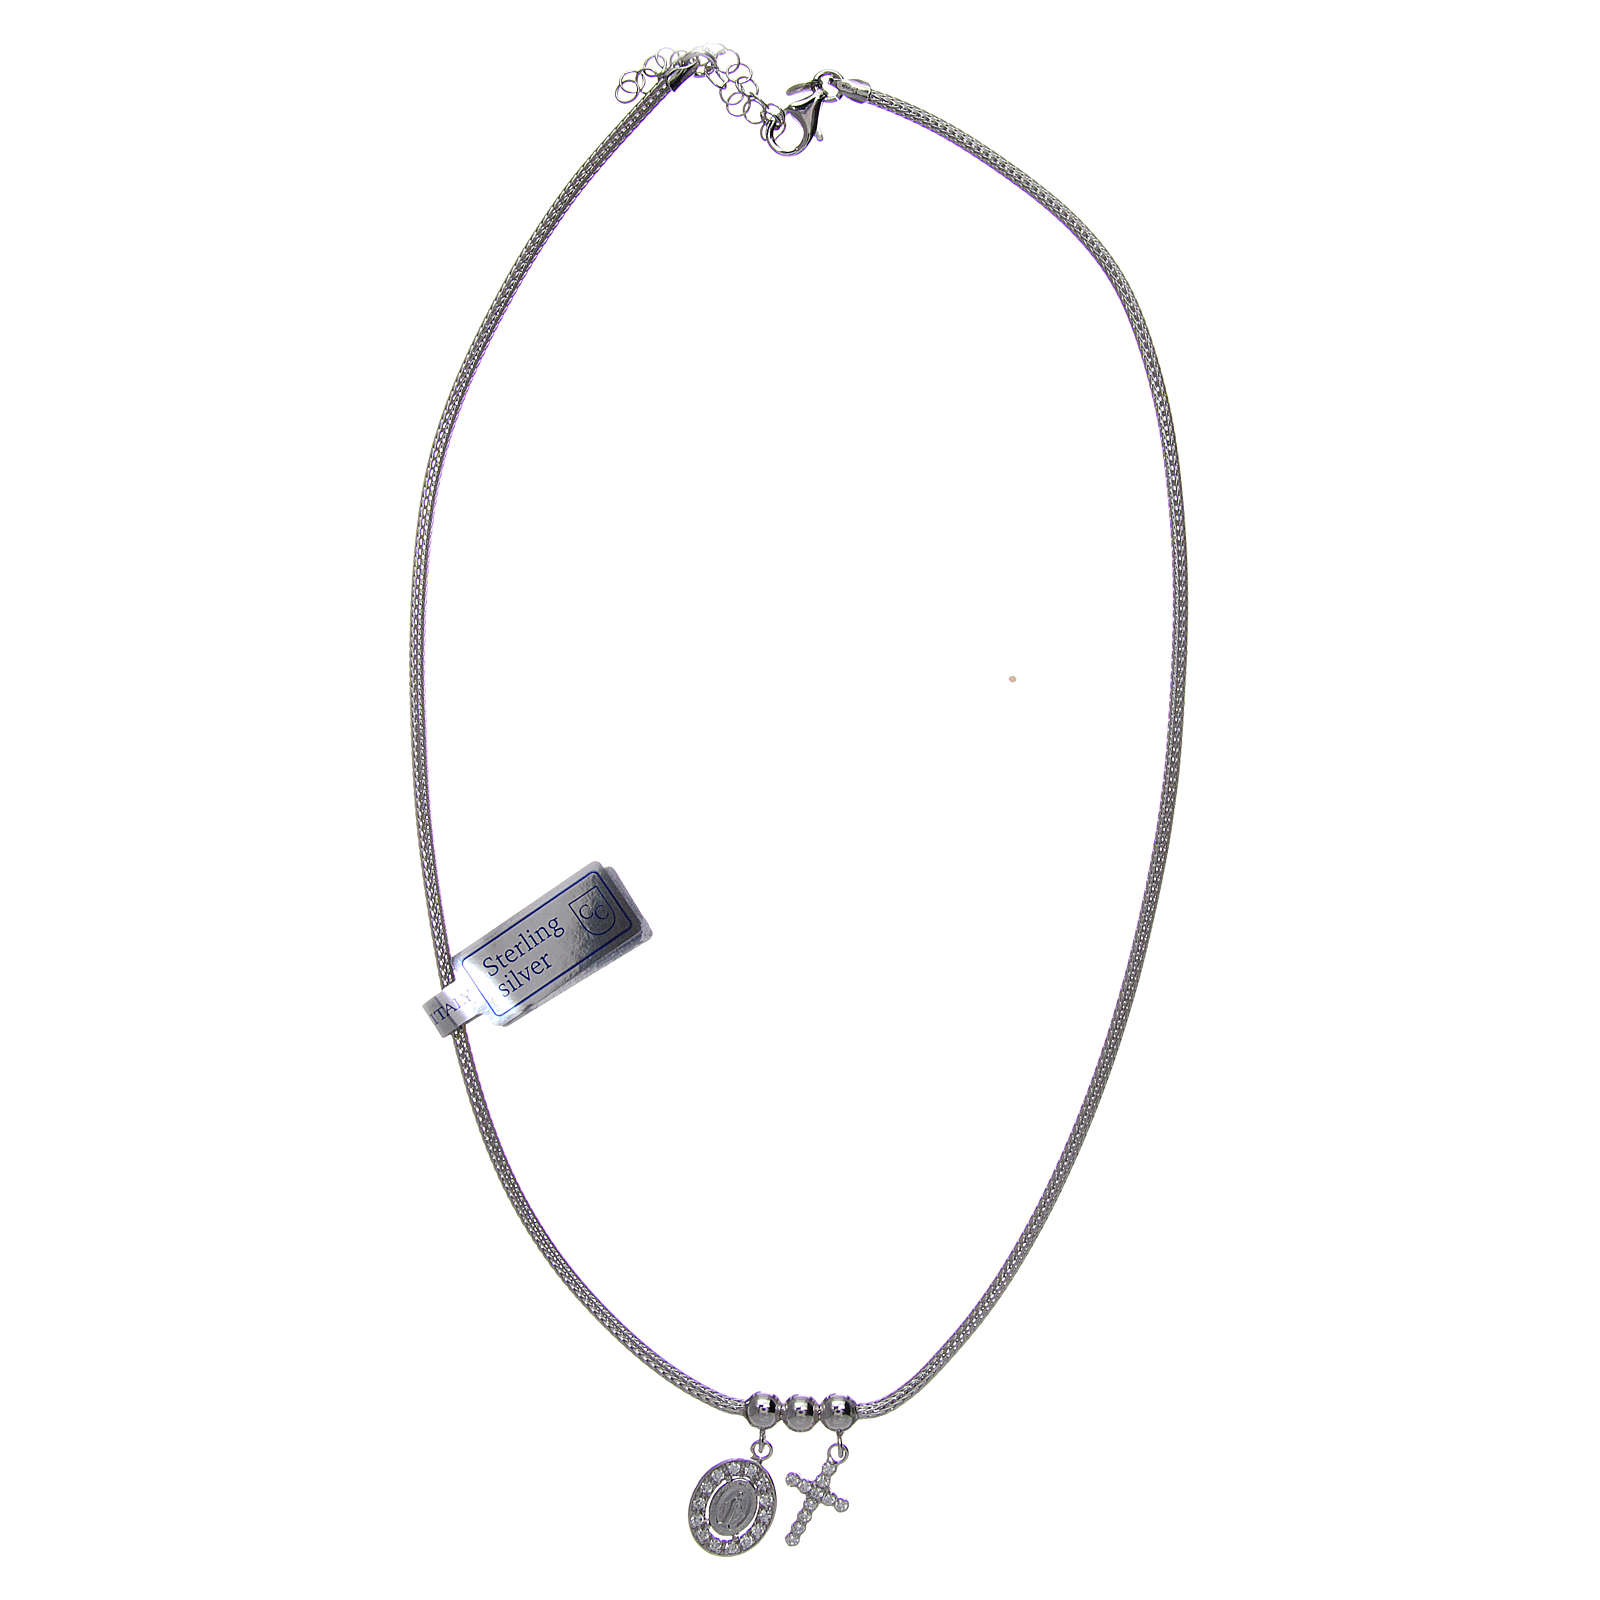 Necklace in in 925 sterling silver finished in rhodium, with Miraculous medalet and a cross with strass 4